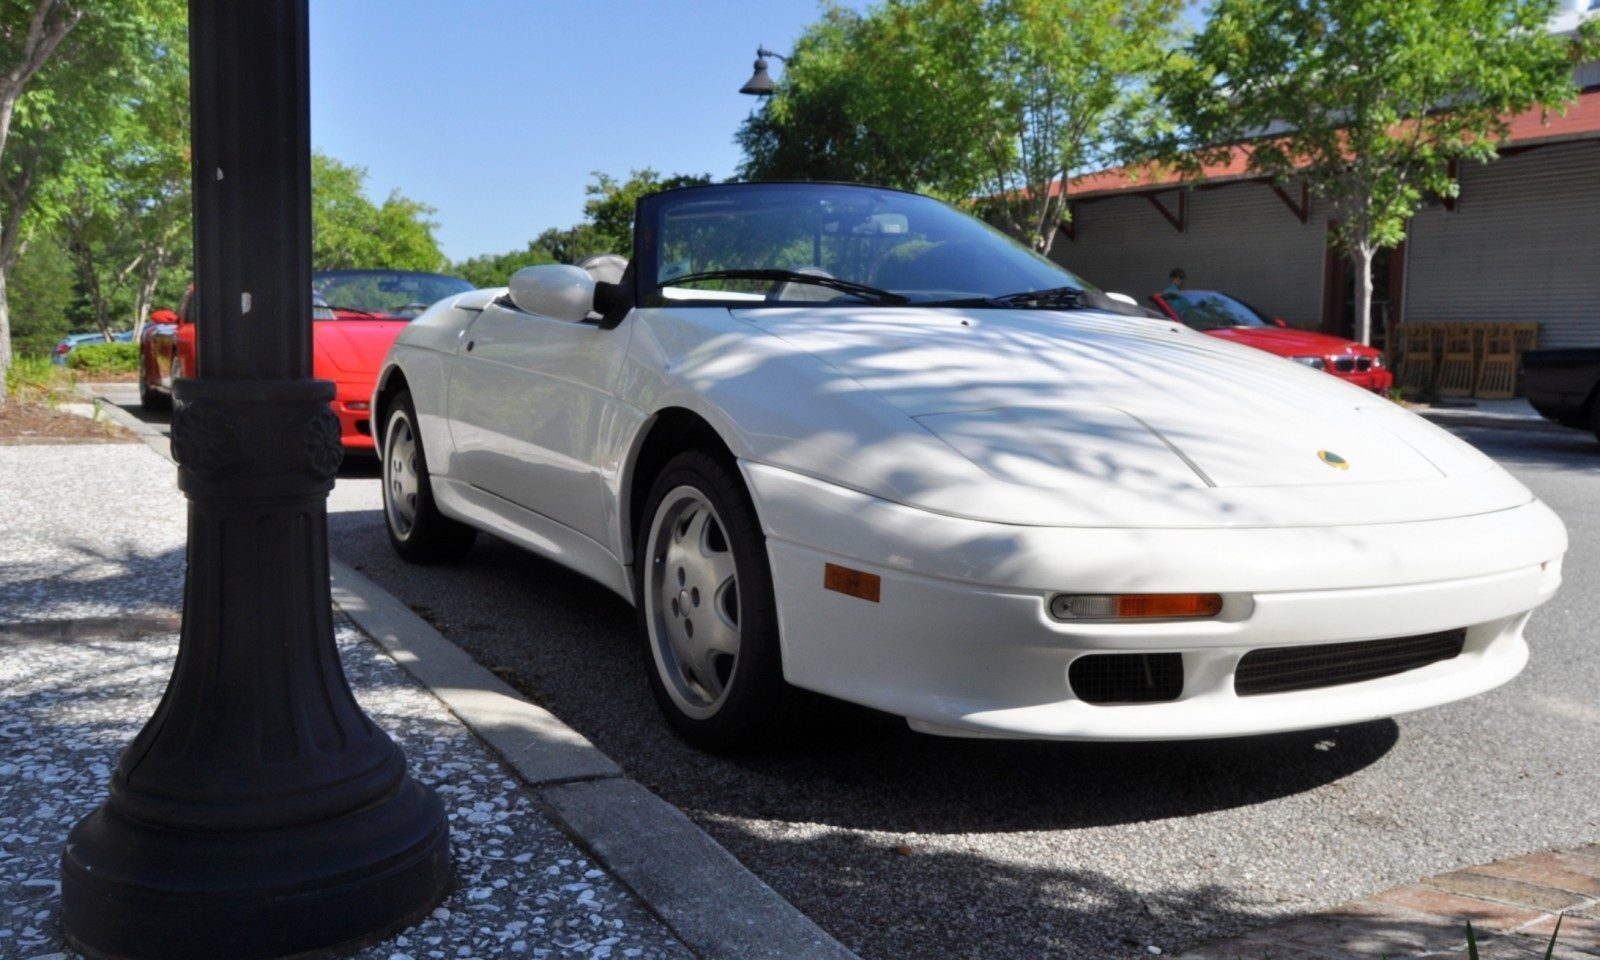 Rare Ragtops - A Pair of Lotus Elans Graced Kiawah Island, SC Cars and Coffee Today 5